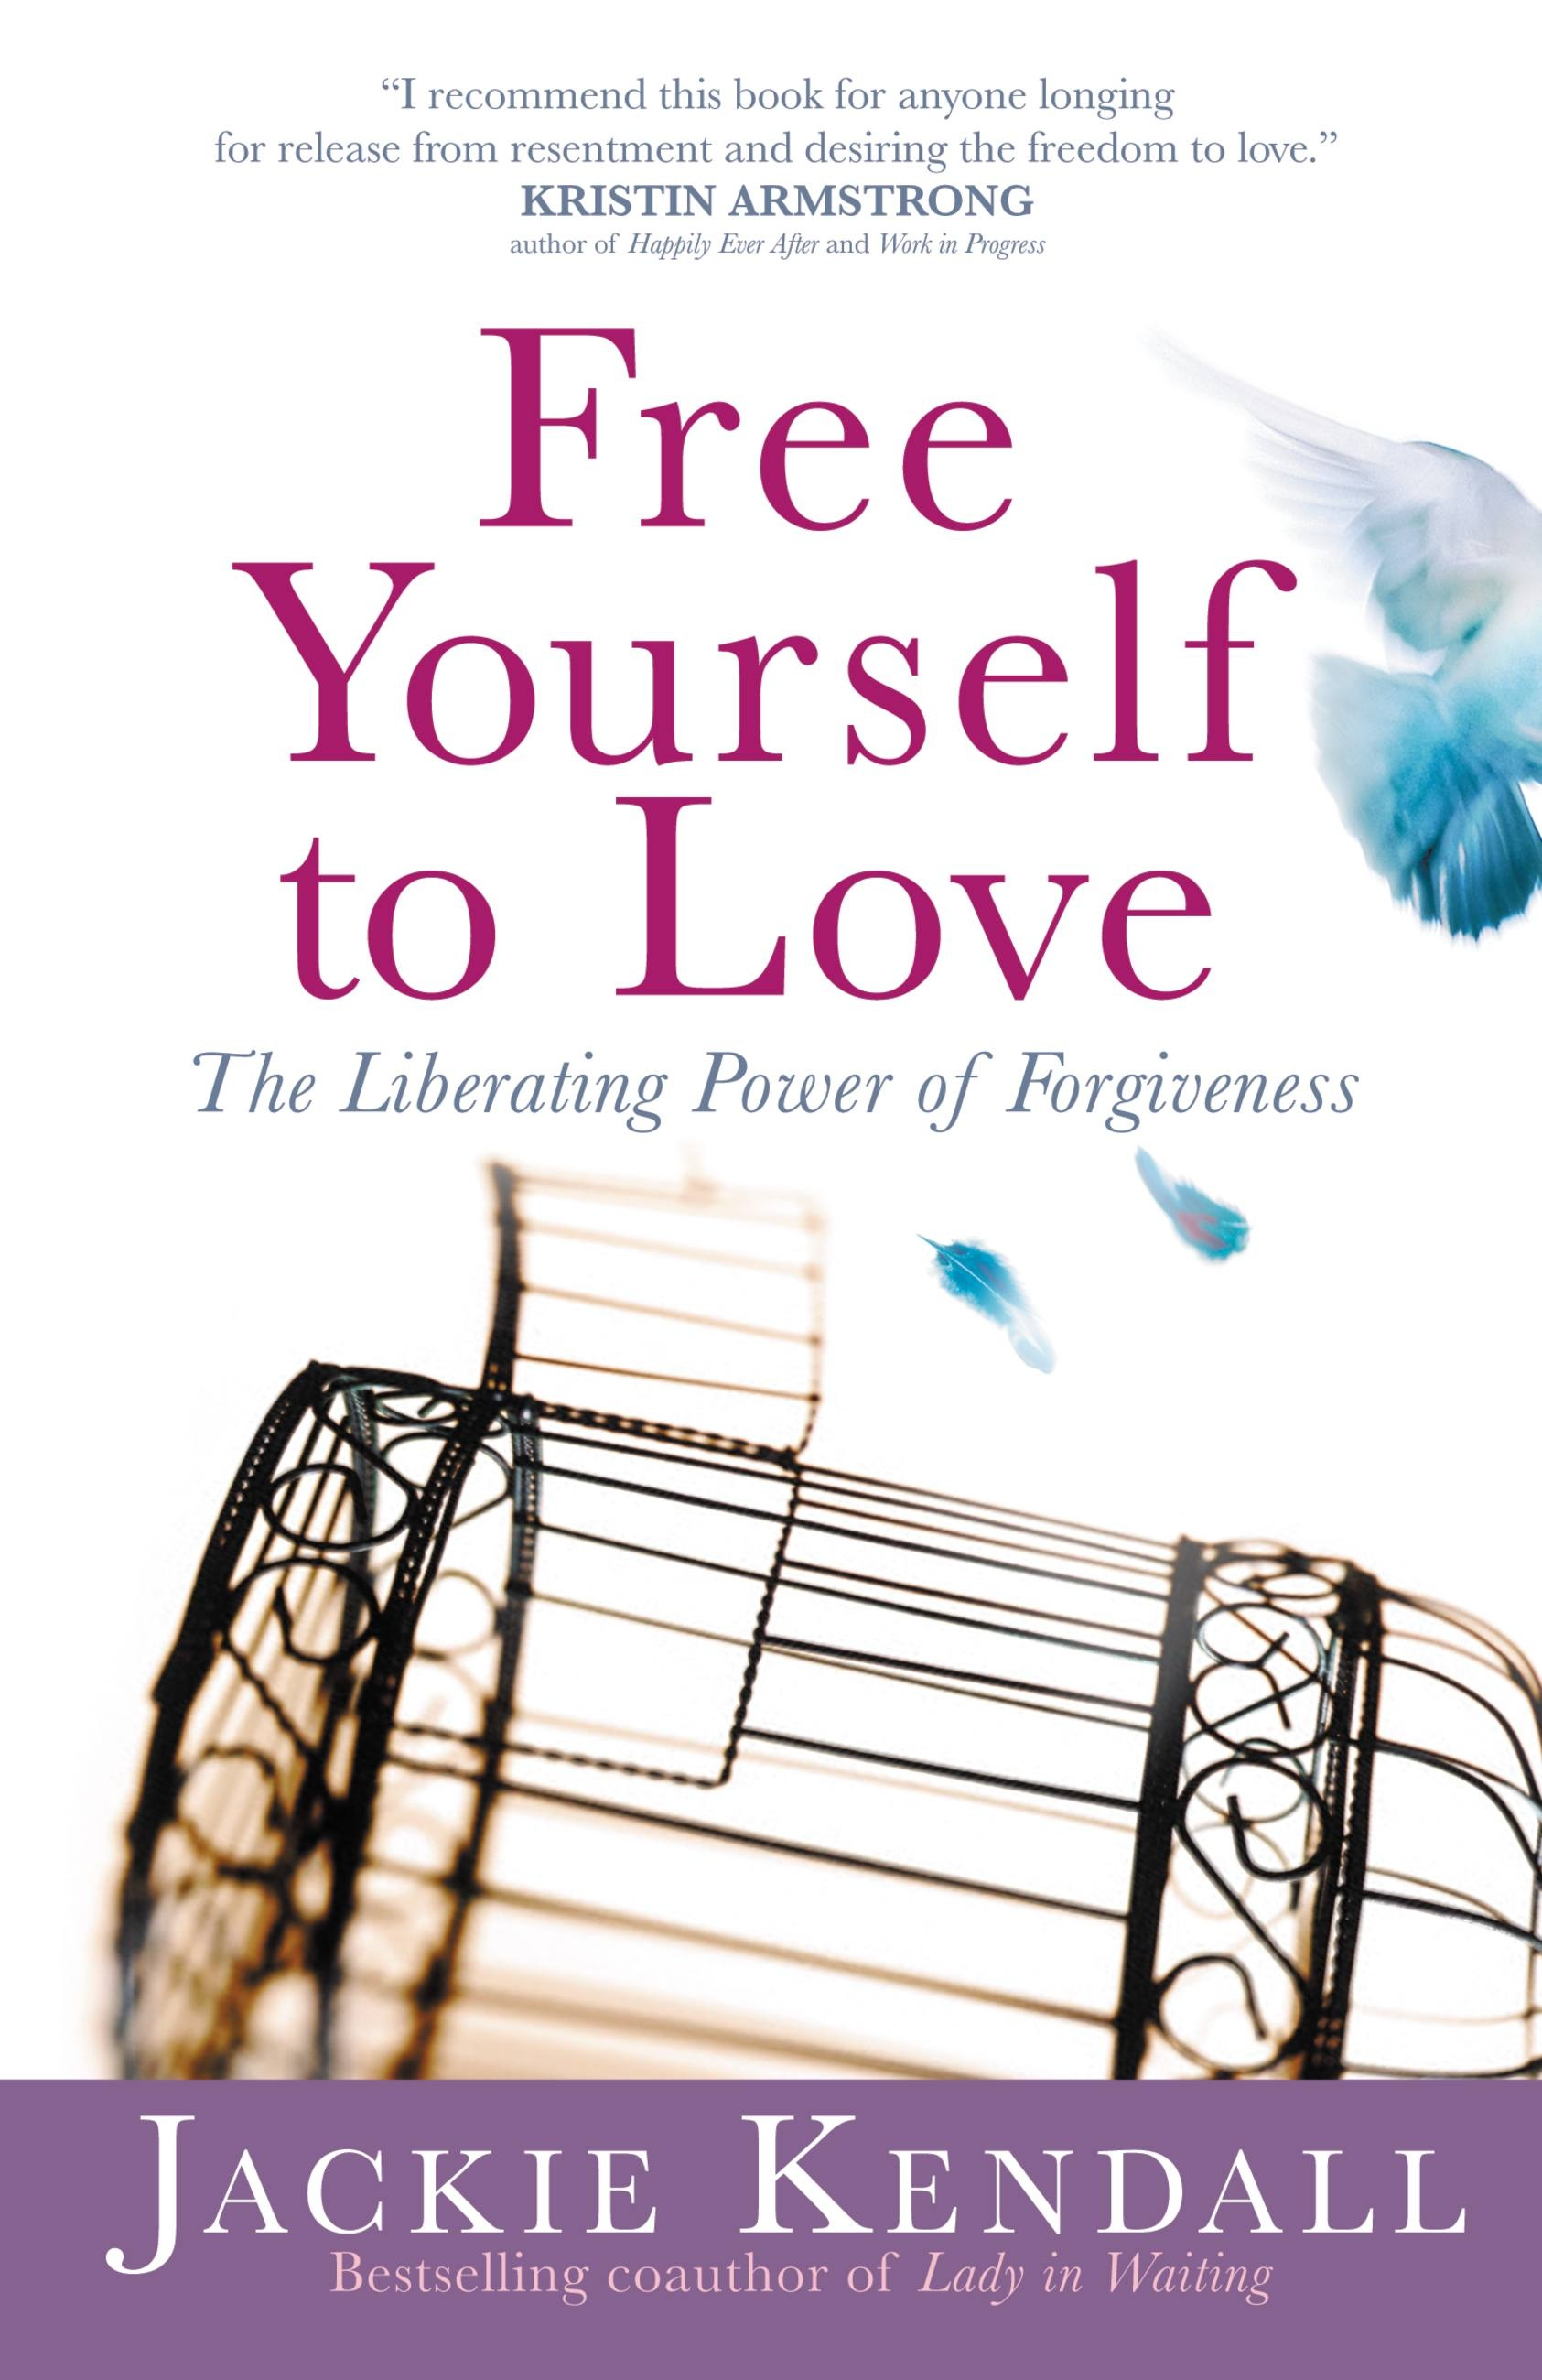 Free Yourself to Love